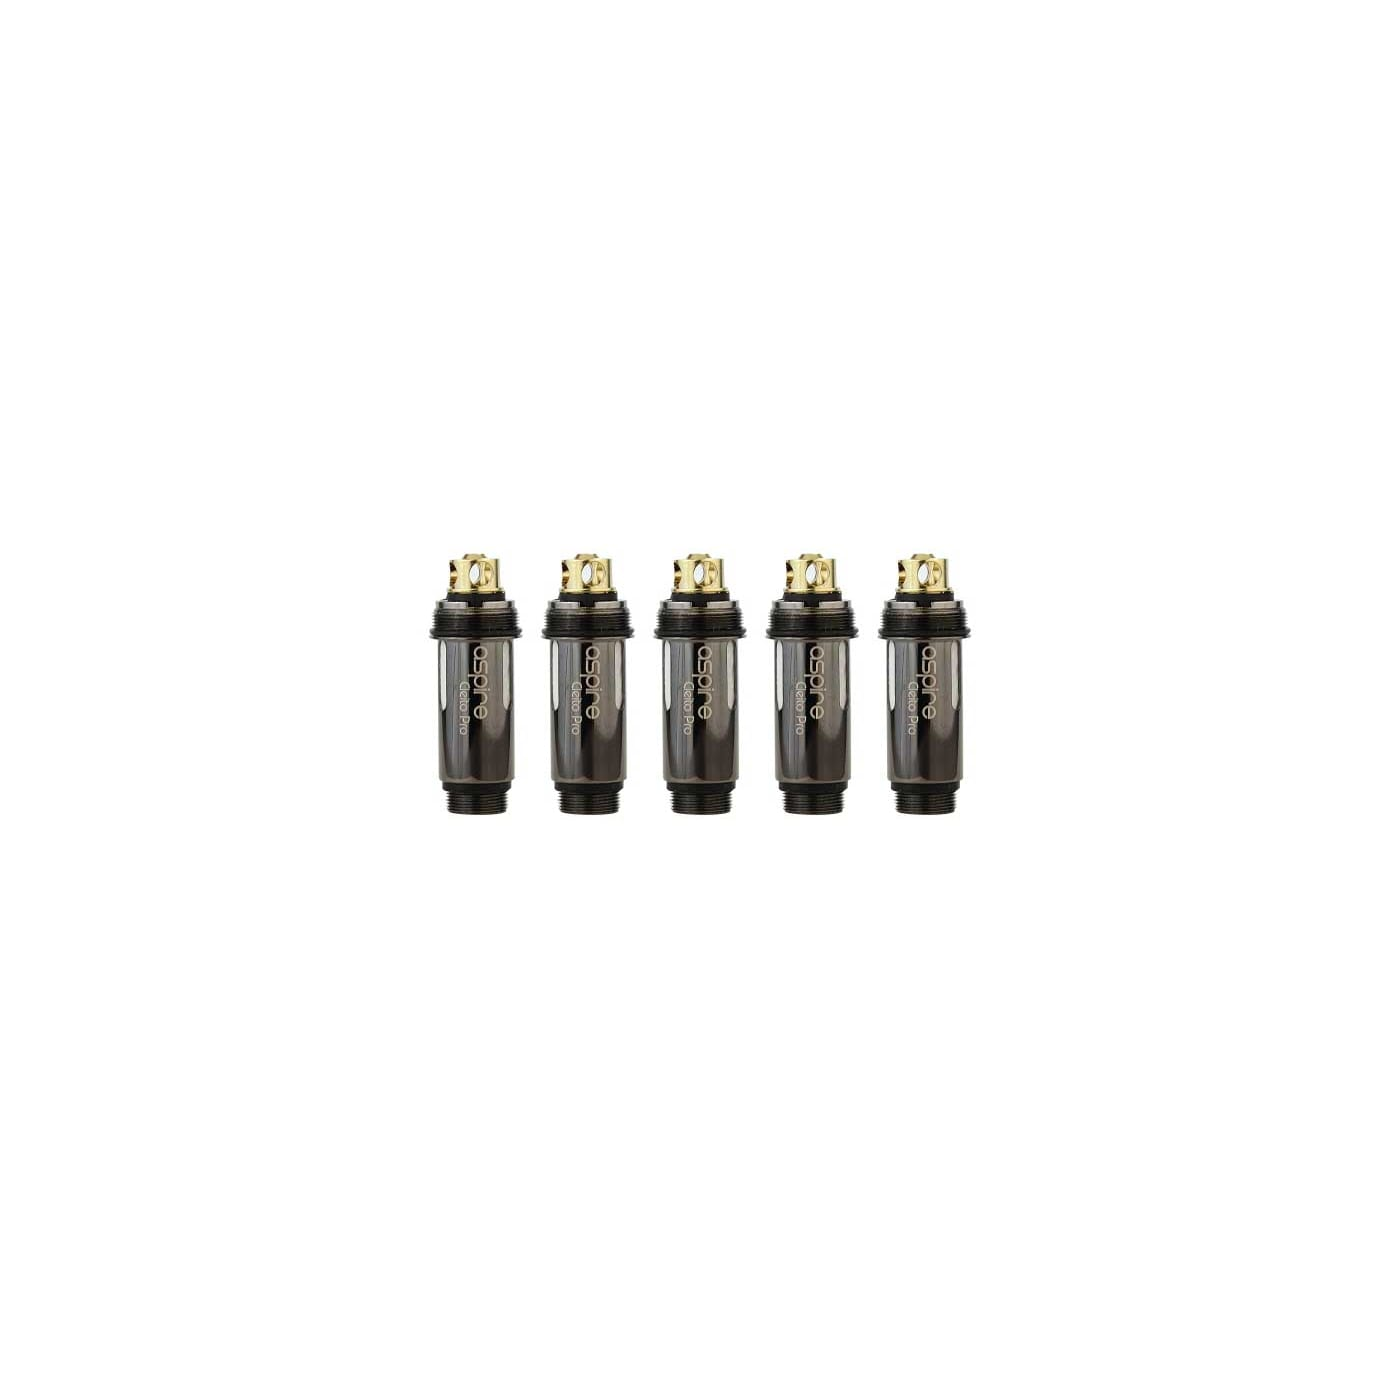 Aspire Cleito Pro Replacement Coil - 5 Pack